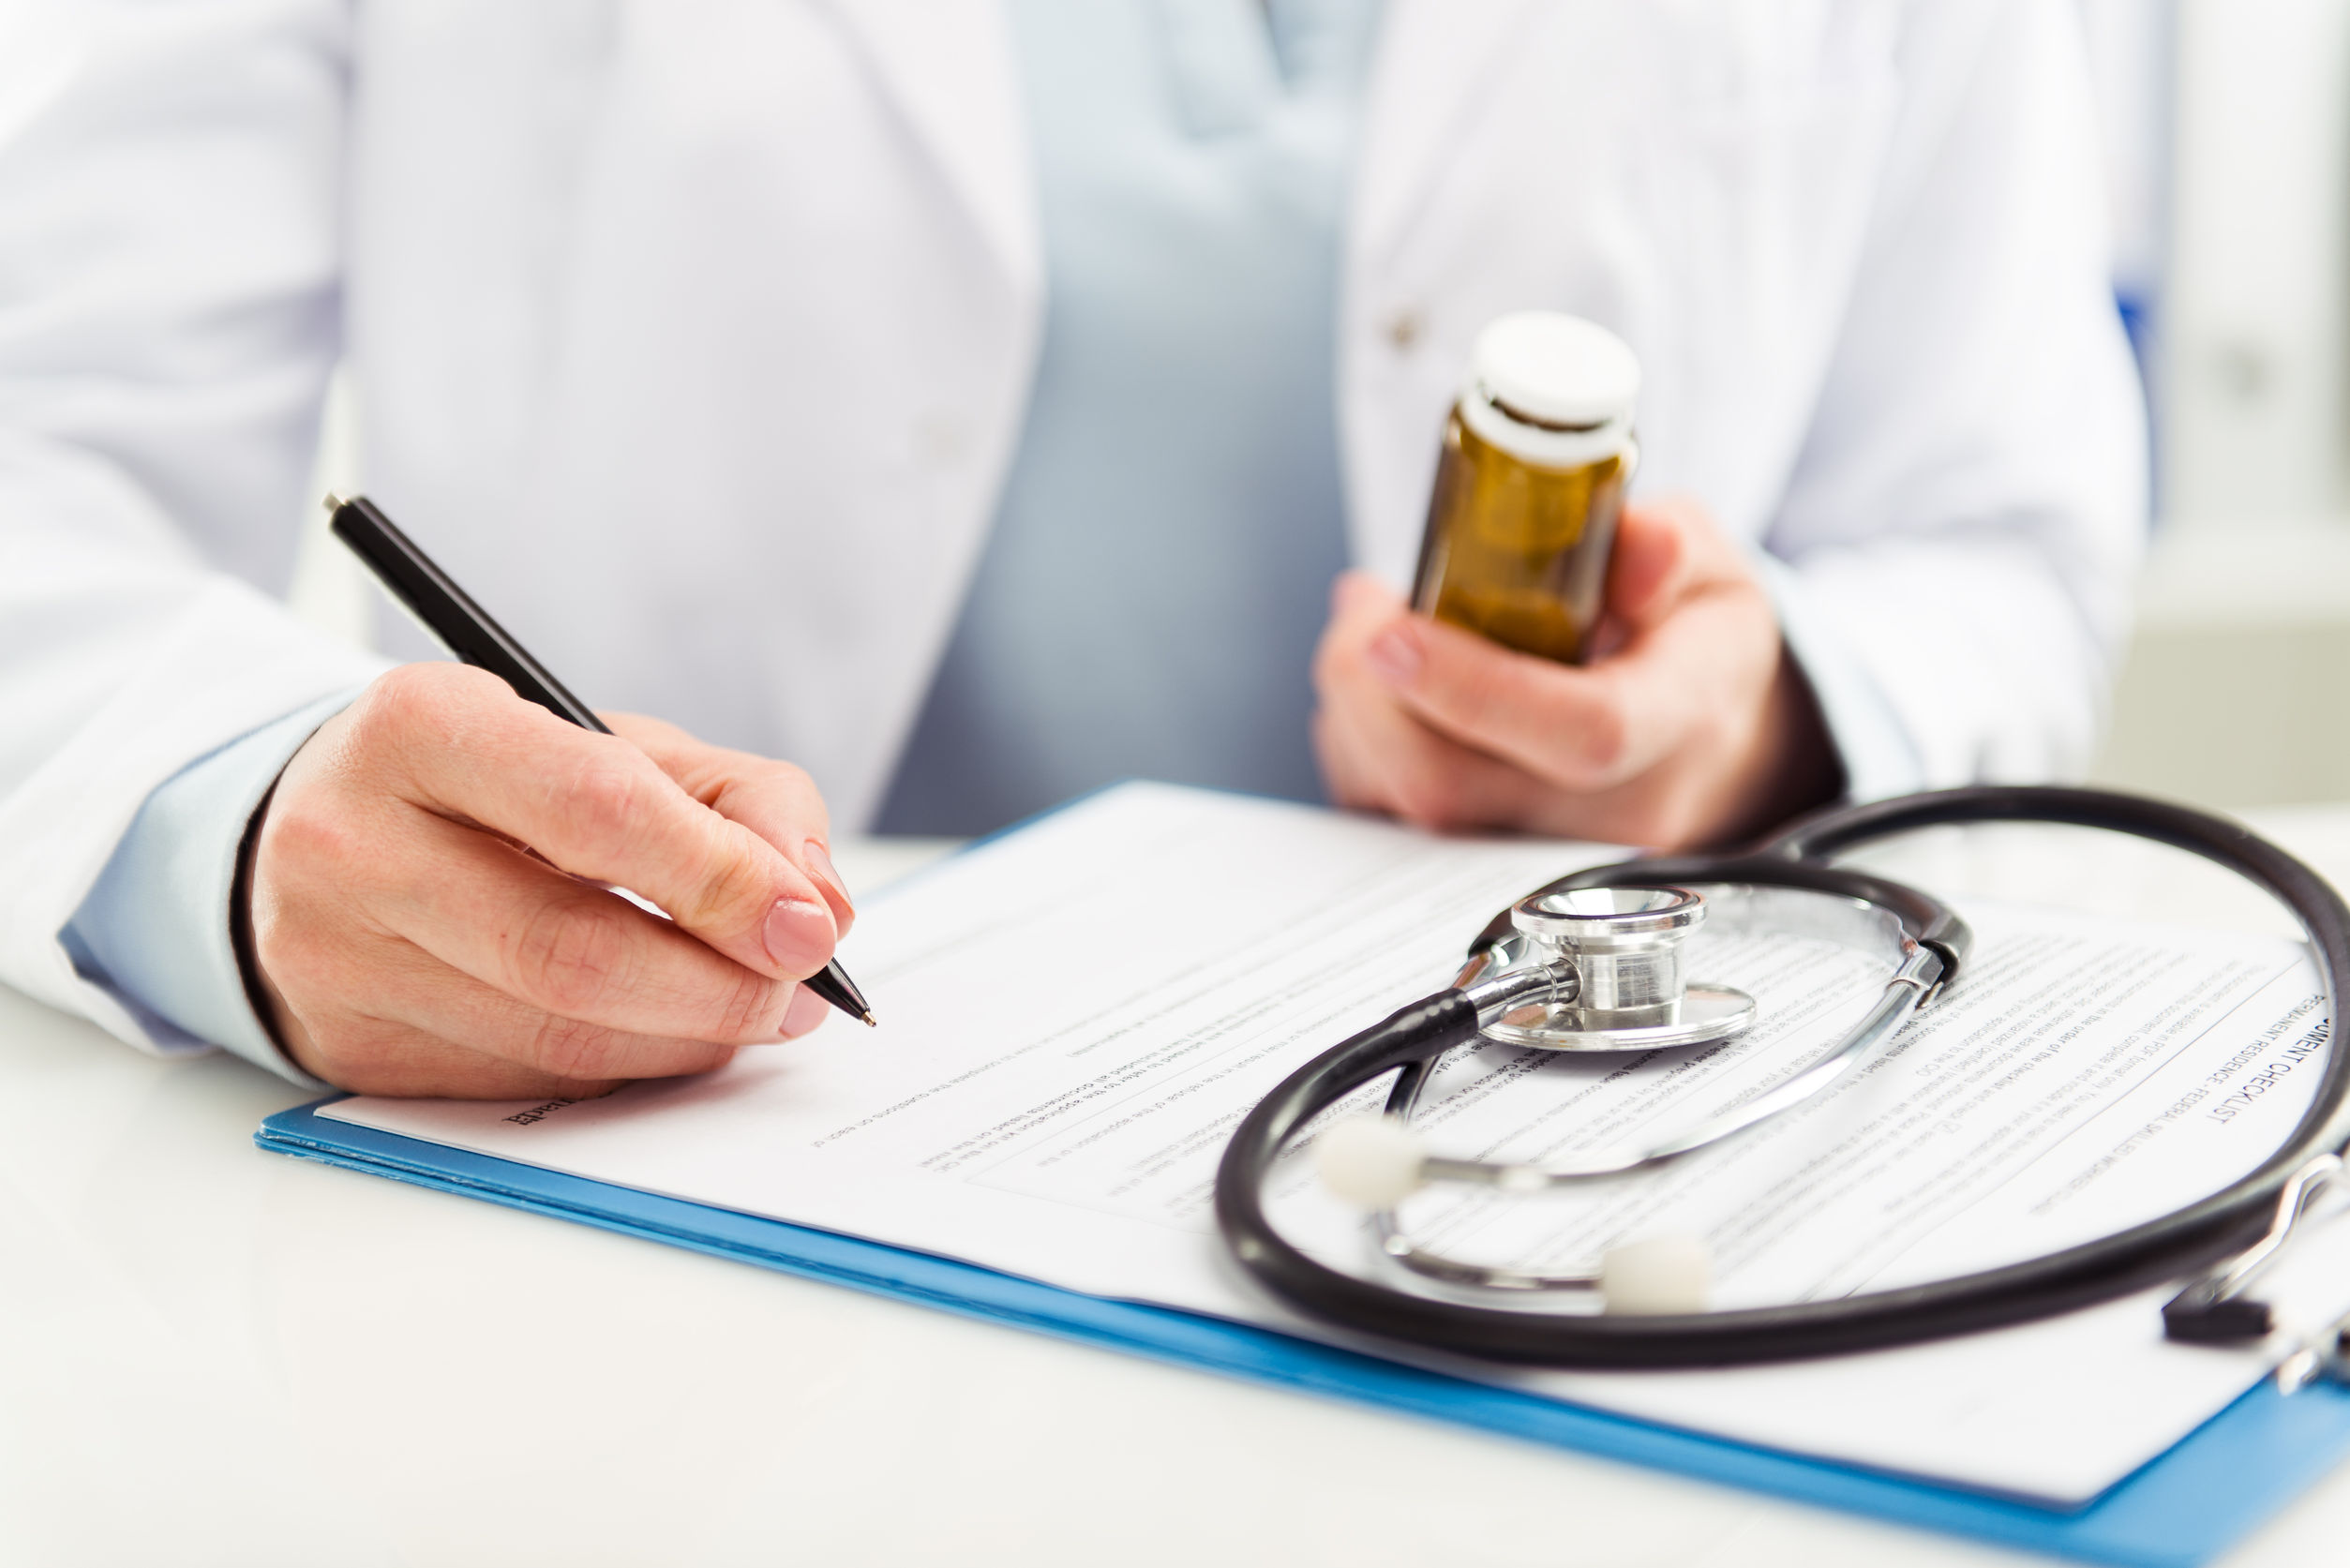 Doctor prescribing medications for patient